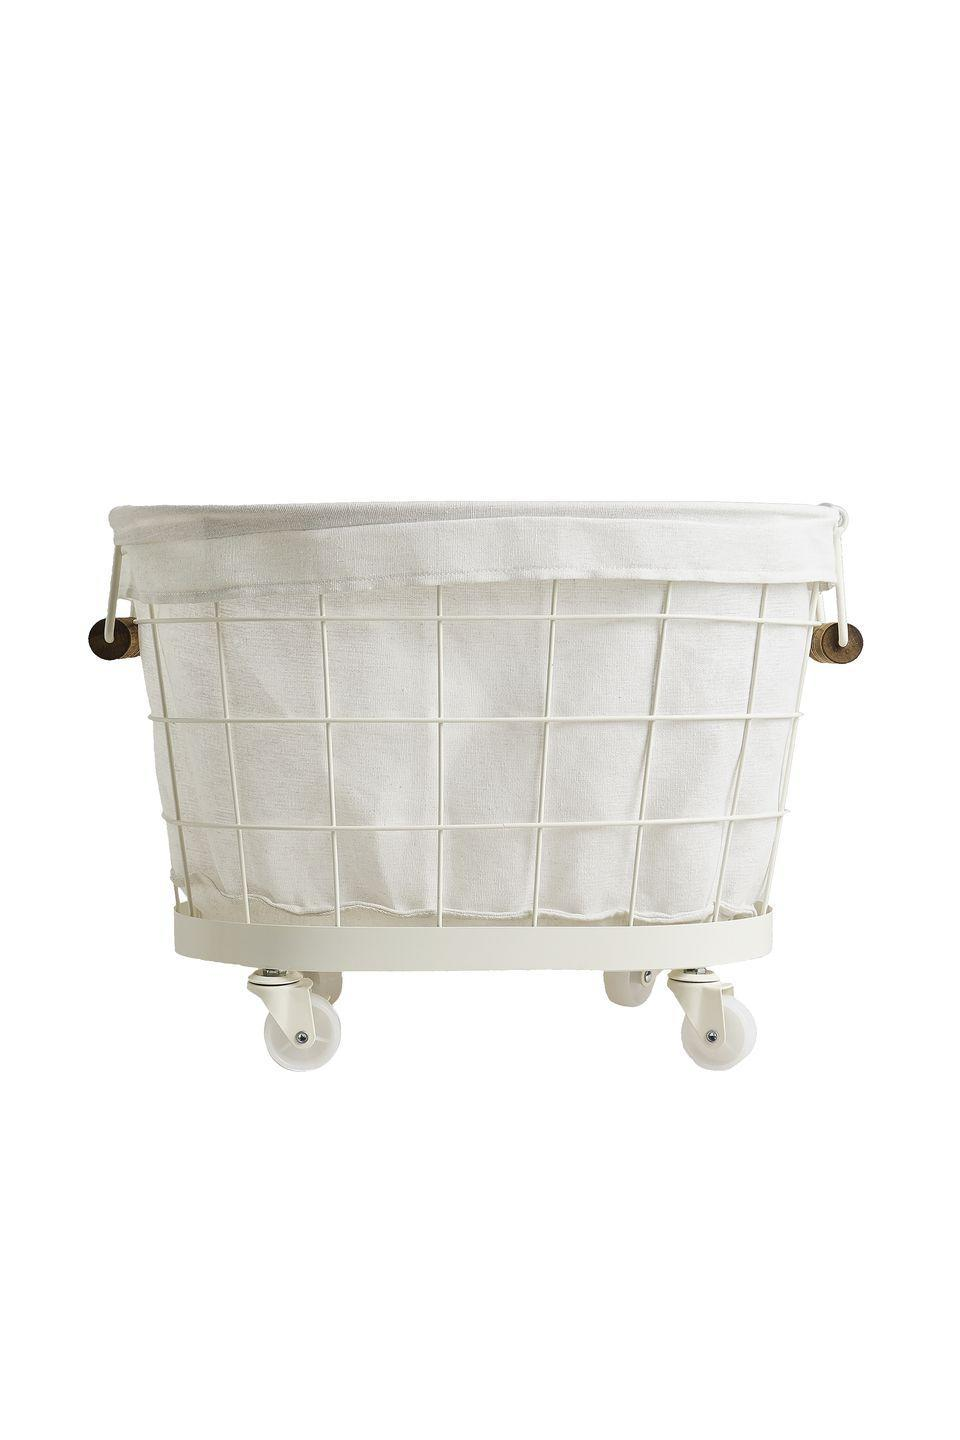 """<p>The perfect size for a load of laundry, this handy basket can be easily wheeled from your washing machine to the drying line. Plus, in a winningly neutral mix of white lacquered metal and linen-coloured waterproof fabric, it will suit any interior. £69.99, <a href=""""https://www.zarahome.com/gb/lacquered-metal-basket-with-wheels-l49275049"""" rel=""""nofollow noopener"""" target=""""_blank"""" data-ylk=""""slk:zarahome.com"""" class=""""link rapid-noclick-resp"""">zarahome.com</a></p>"""